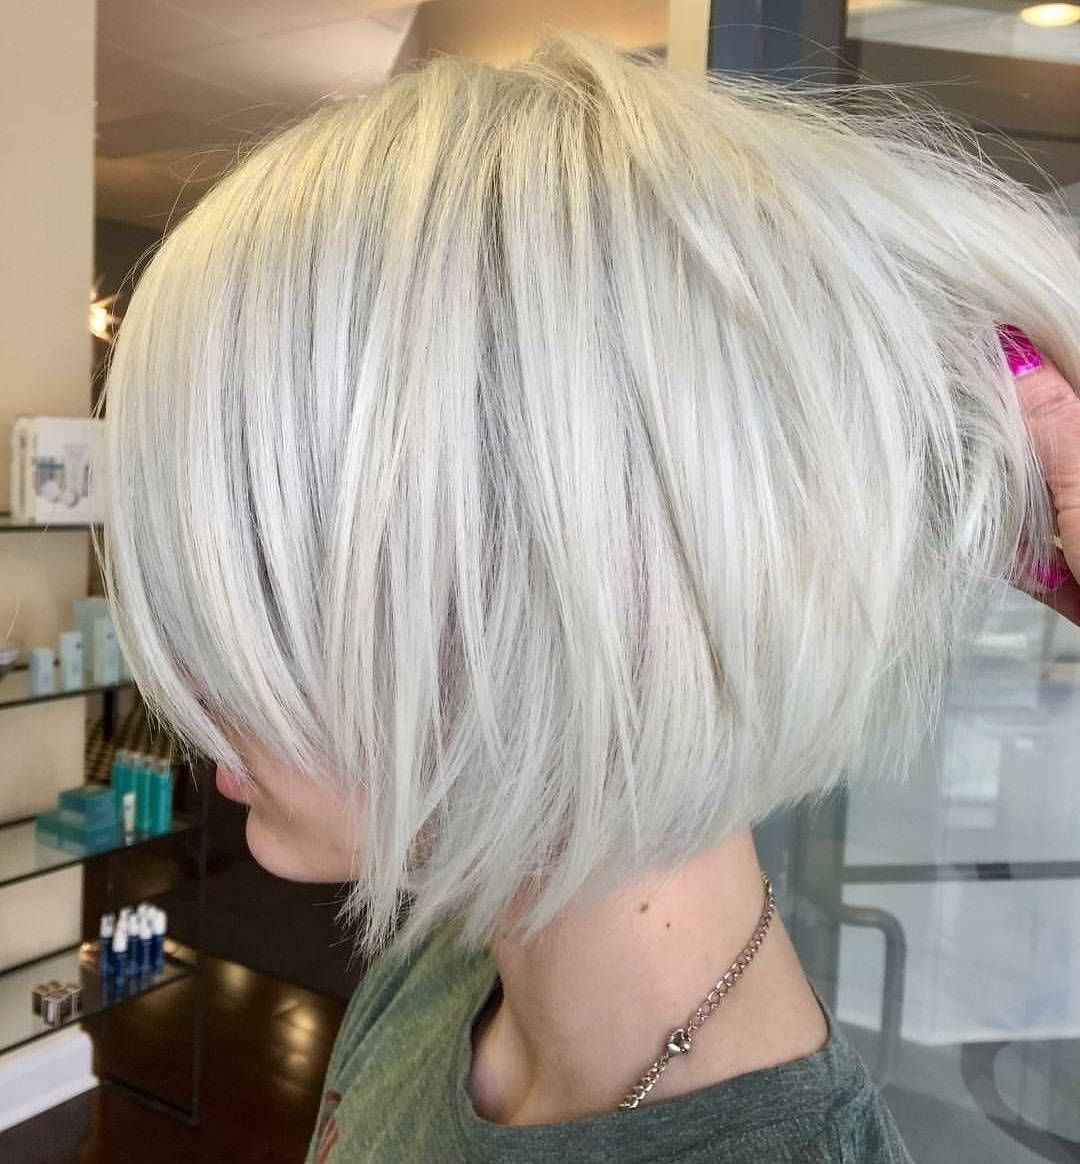 10 Layered Bob Hairstyles – Look Fab In New Blonde Shades | Hair Regarding White Blonde Curly Layered Bob Hairstyles (View 2 of 25)